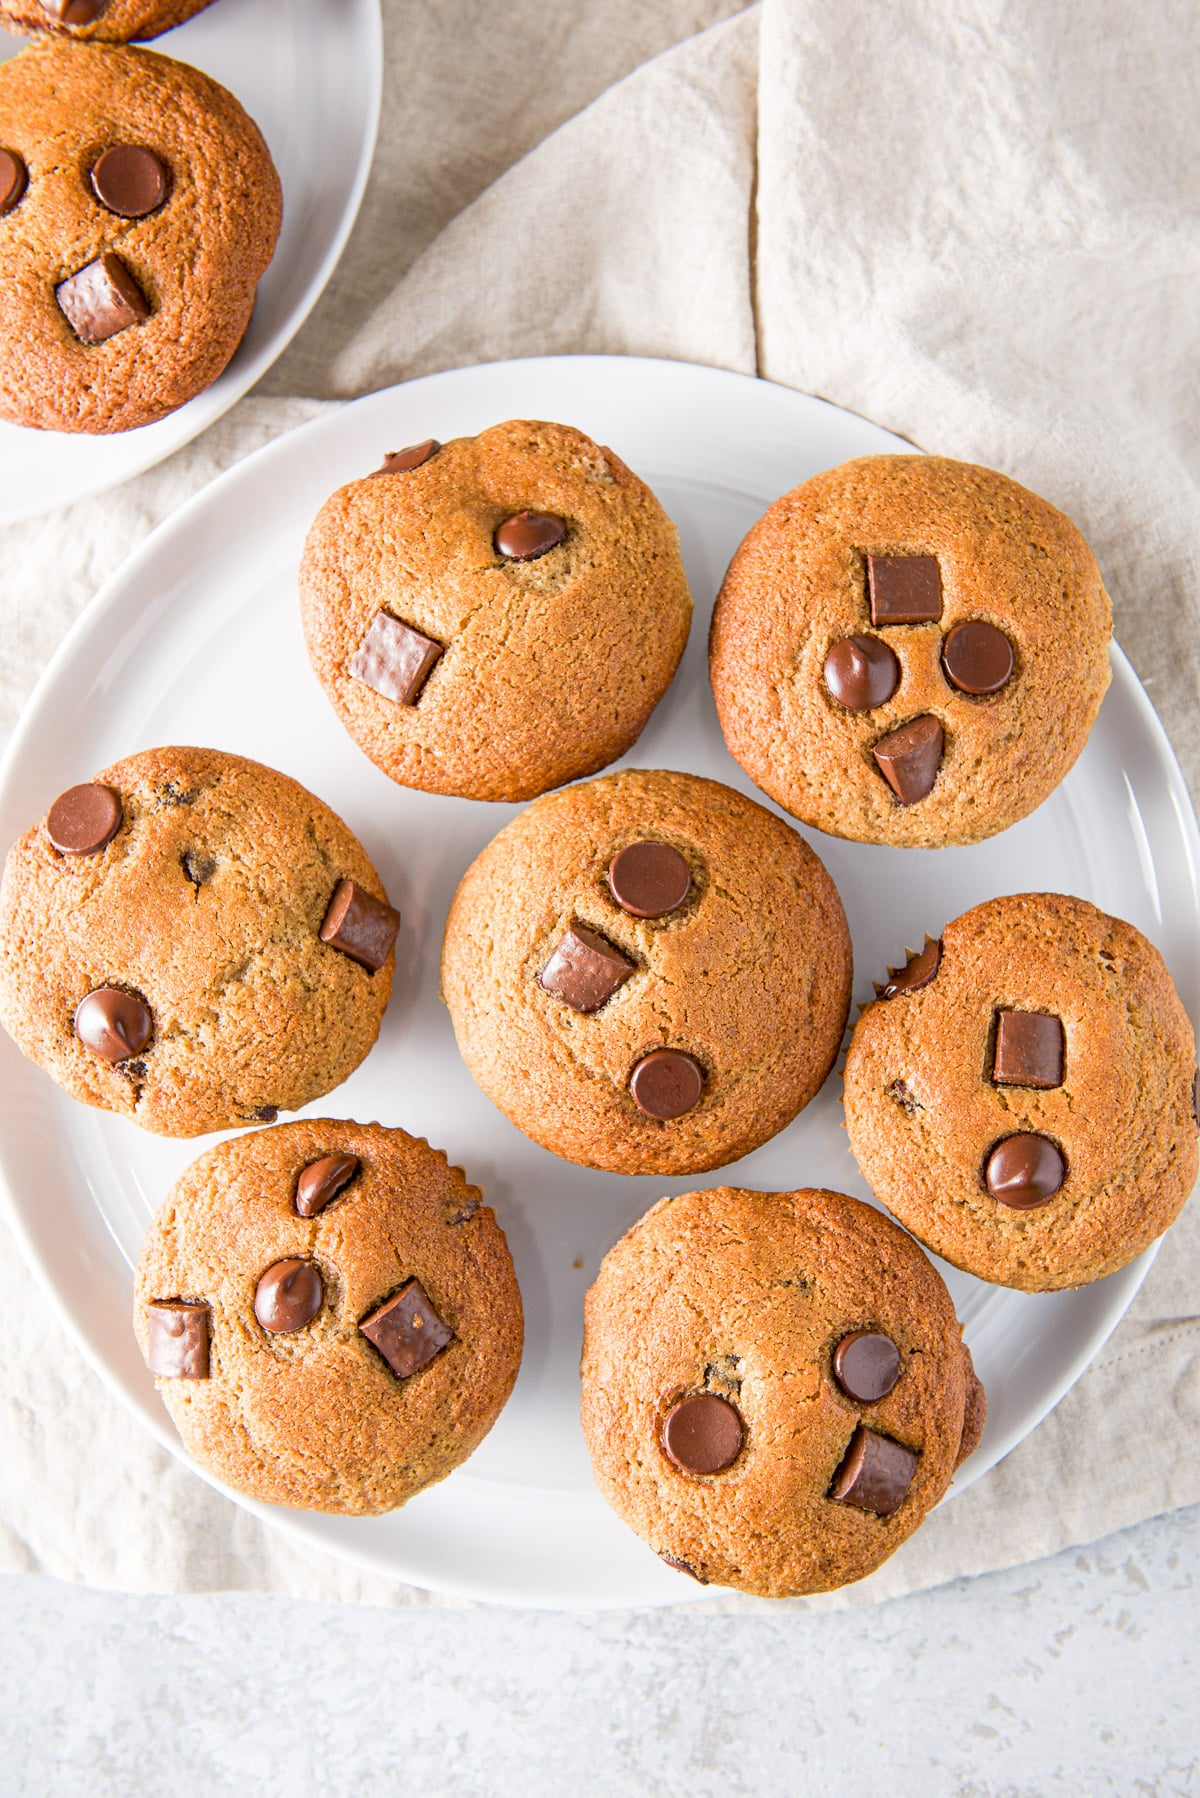 Overhead view of chocolate chip muffins on a plate